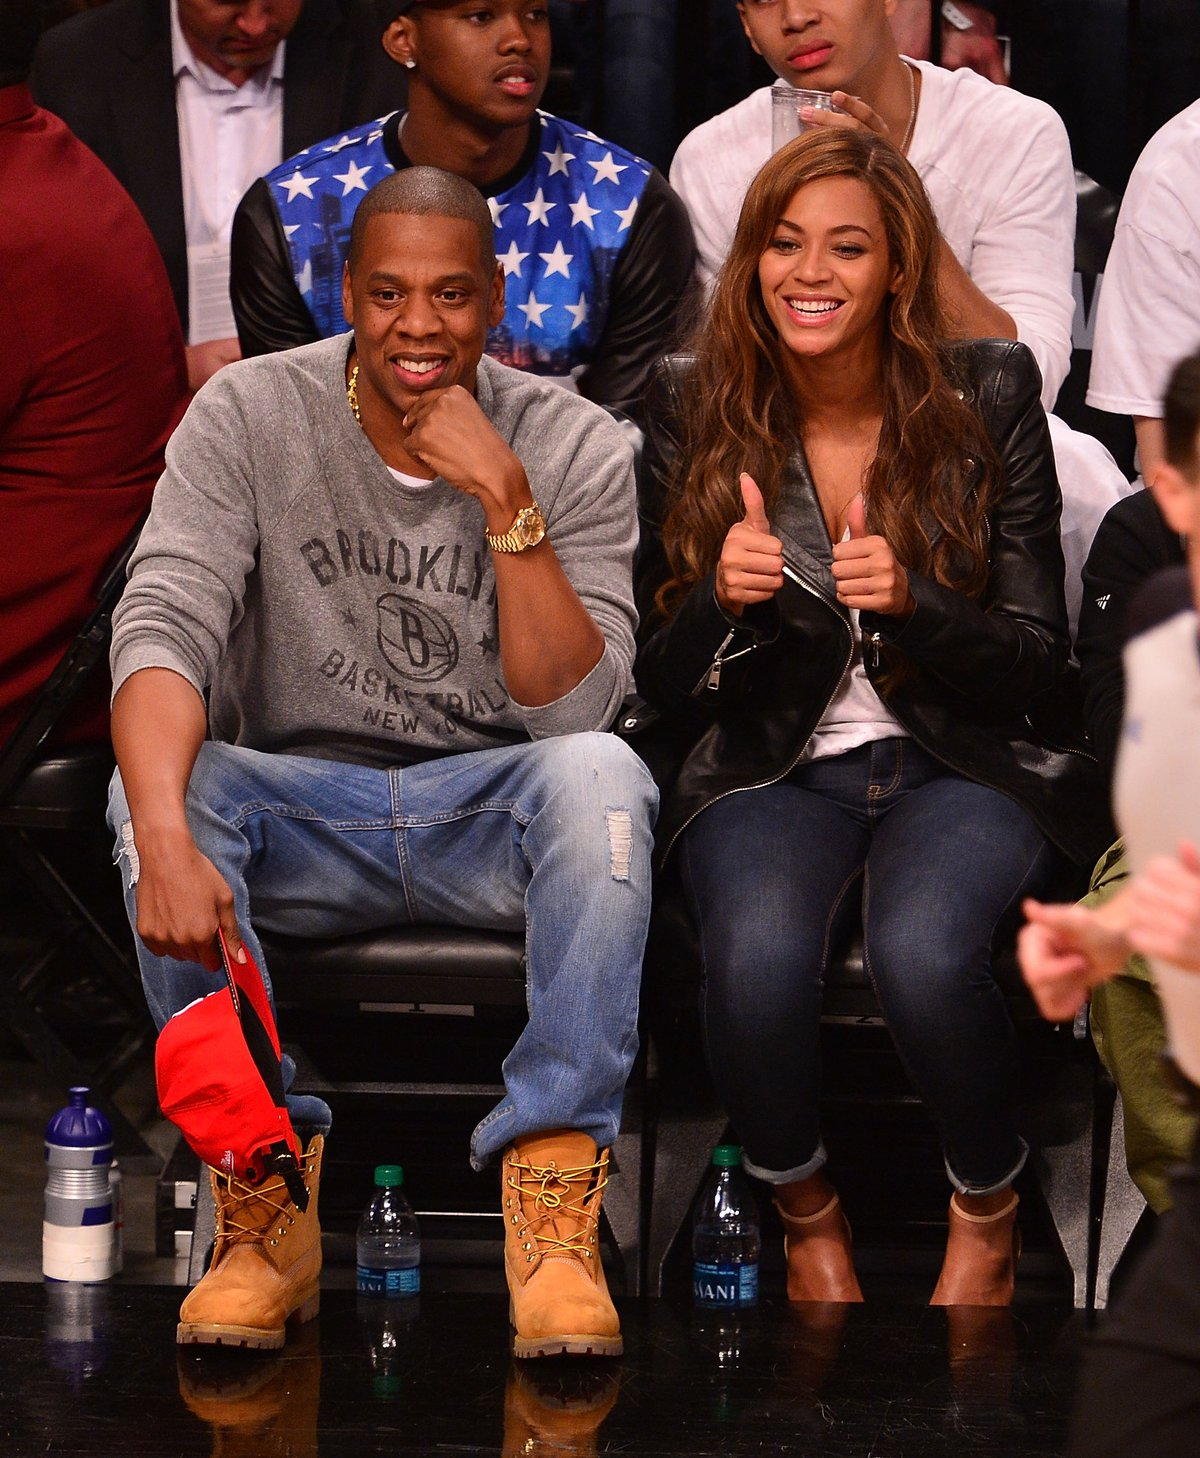 Thumbs up for Jay Z and Beyonce